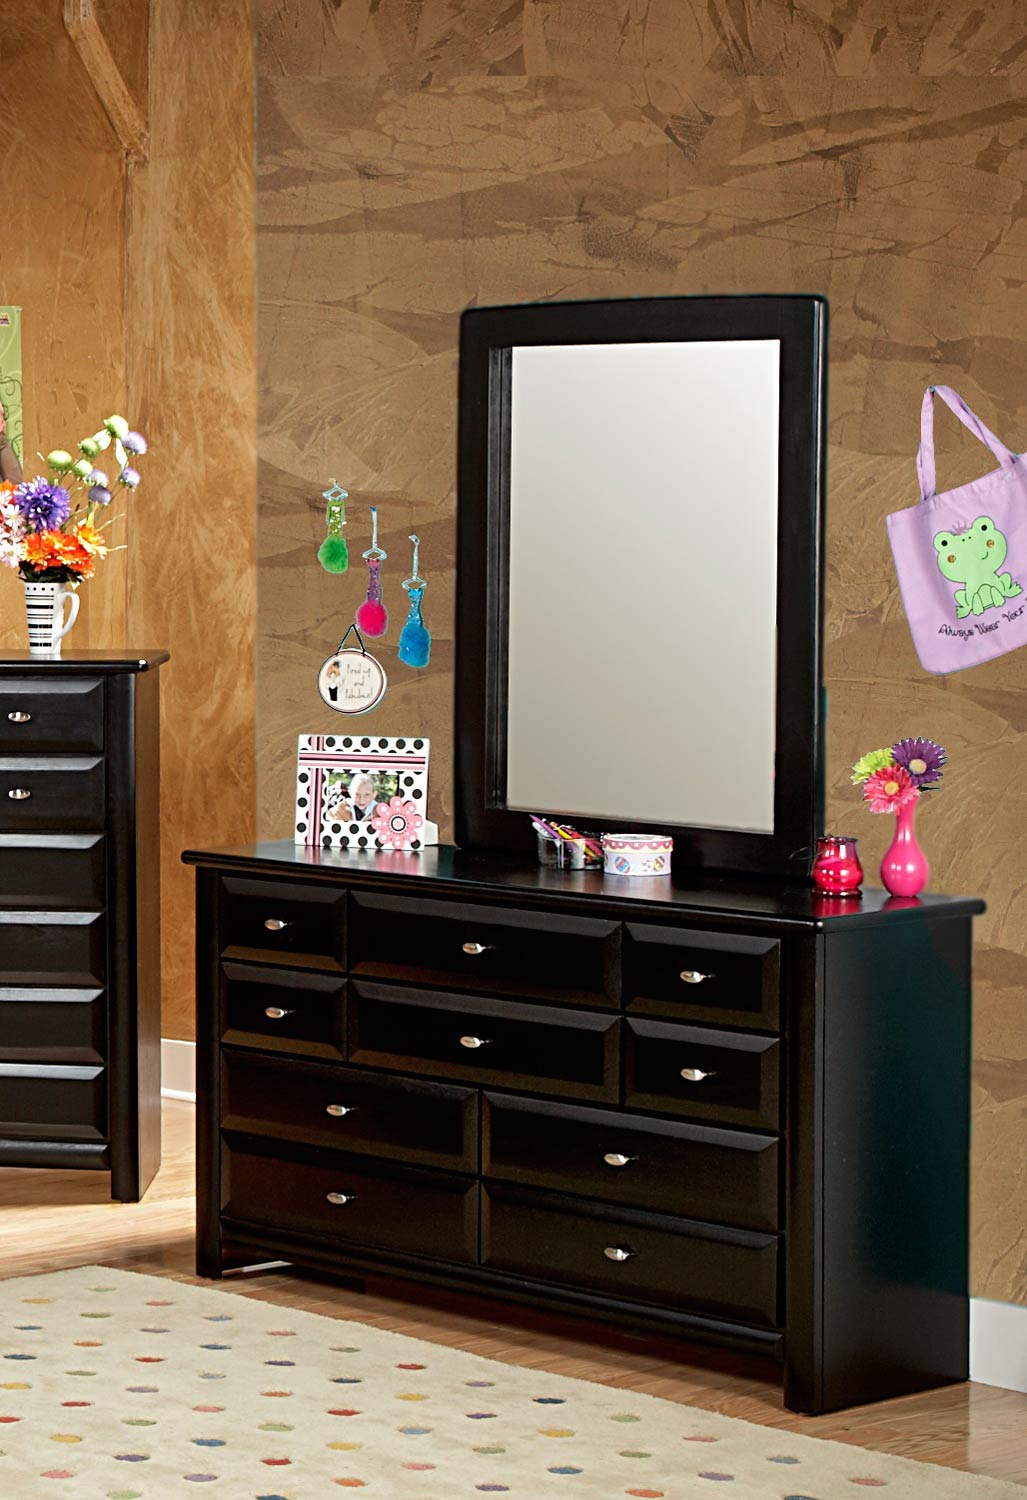 Chelsea Home 3534535-4536 9 Drawer Dresser with Mirror - Black Cherry